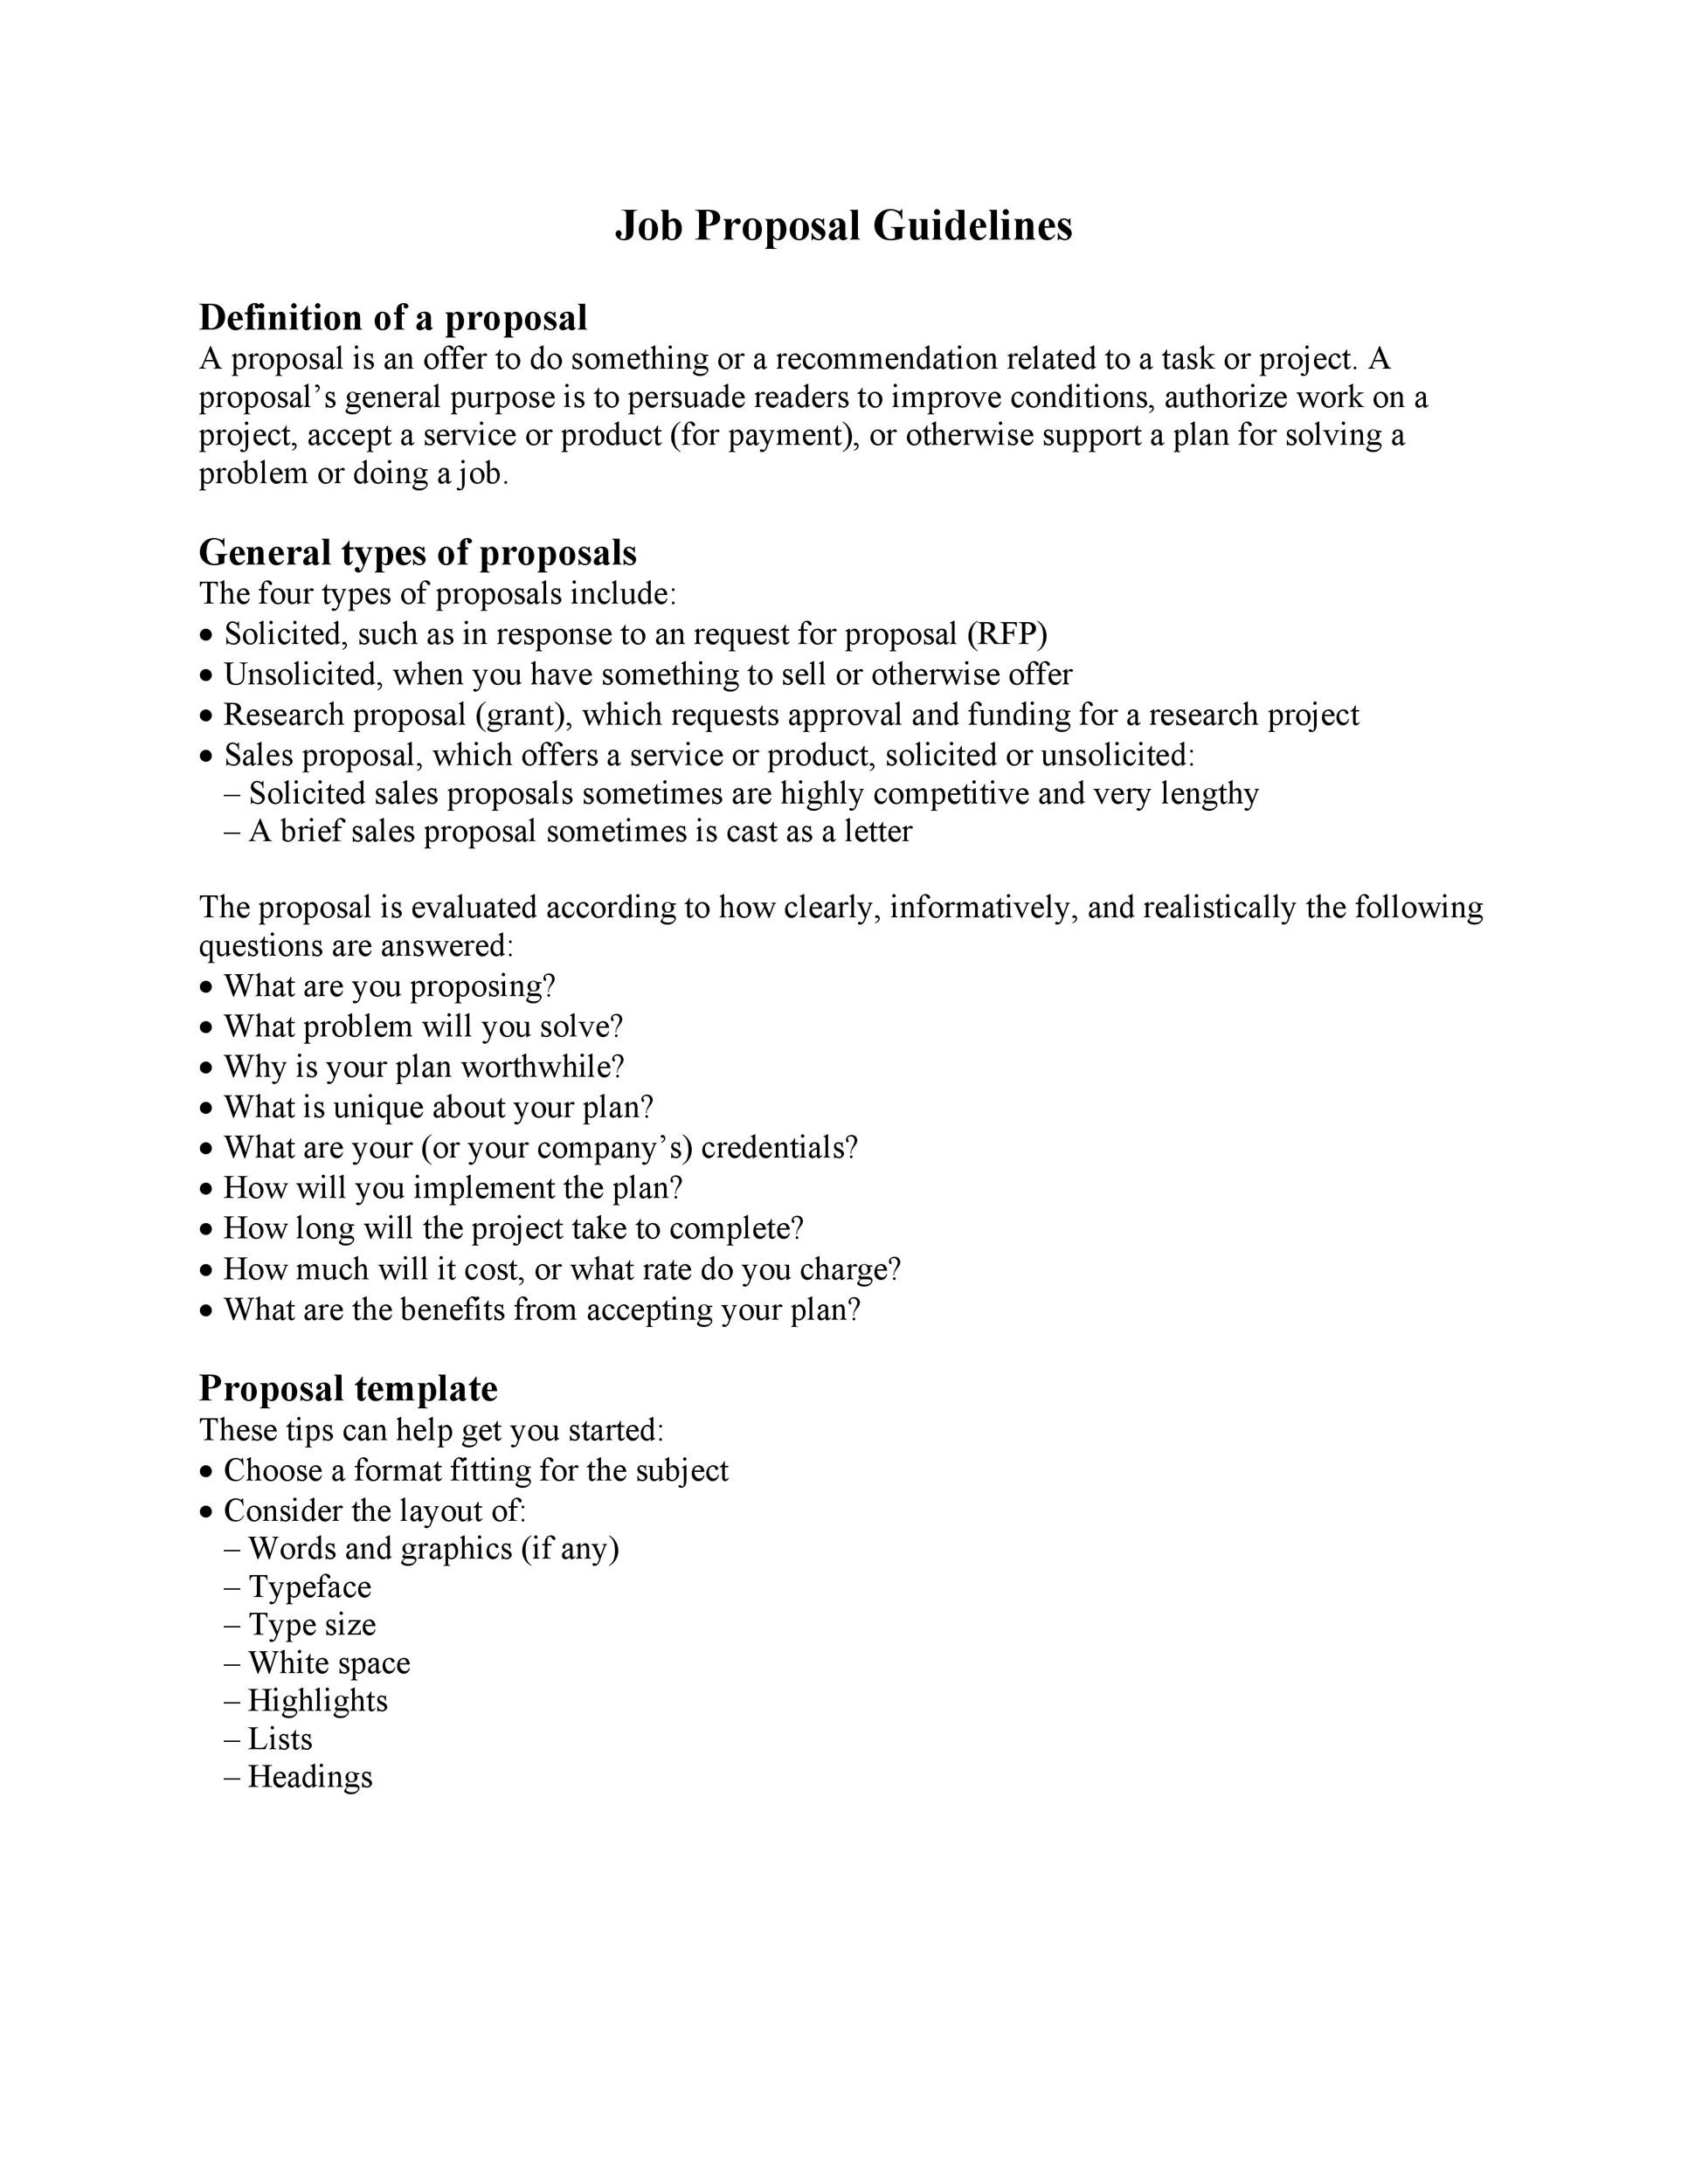 Free Job Proposal Template 29